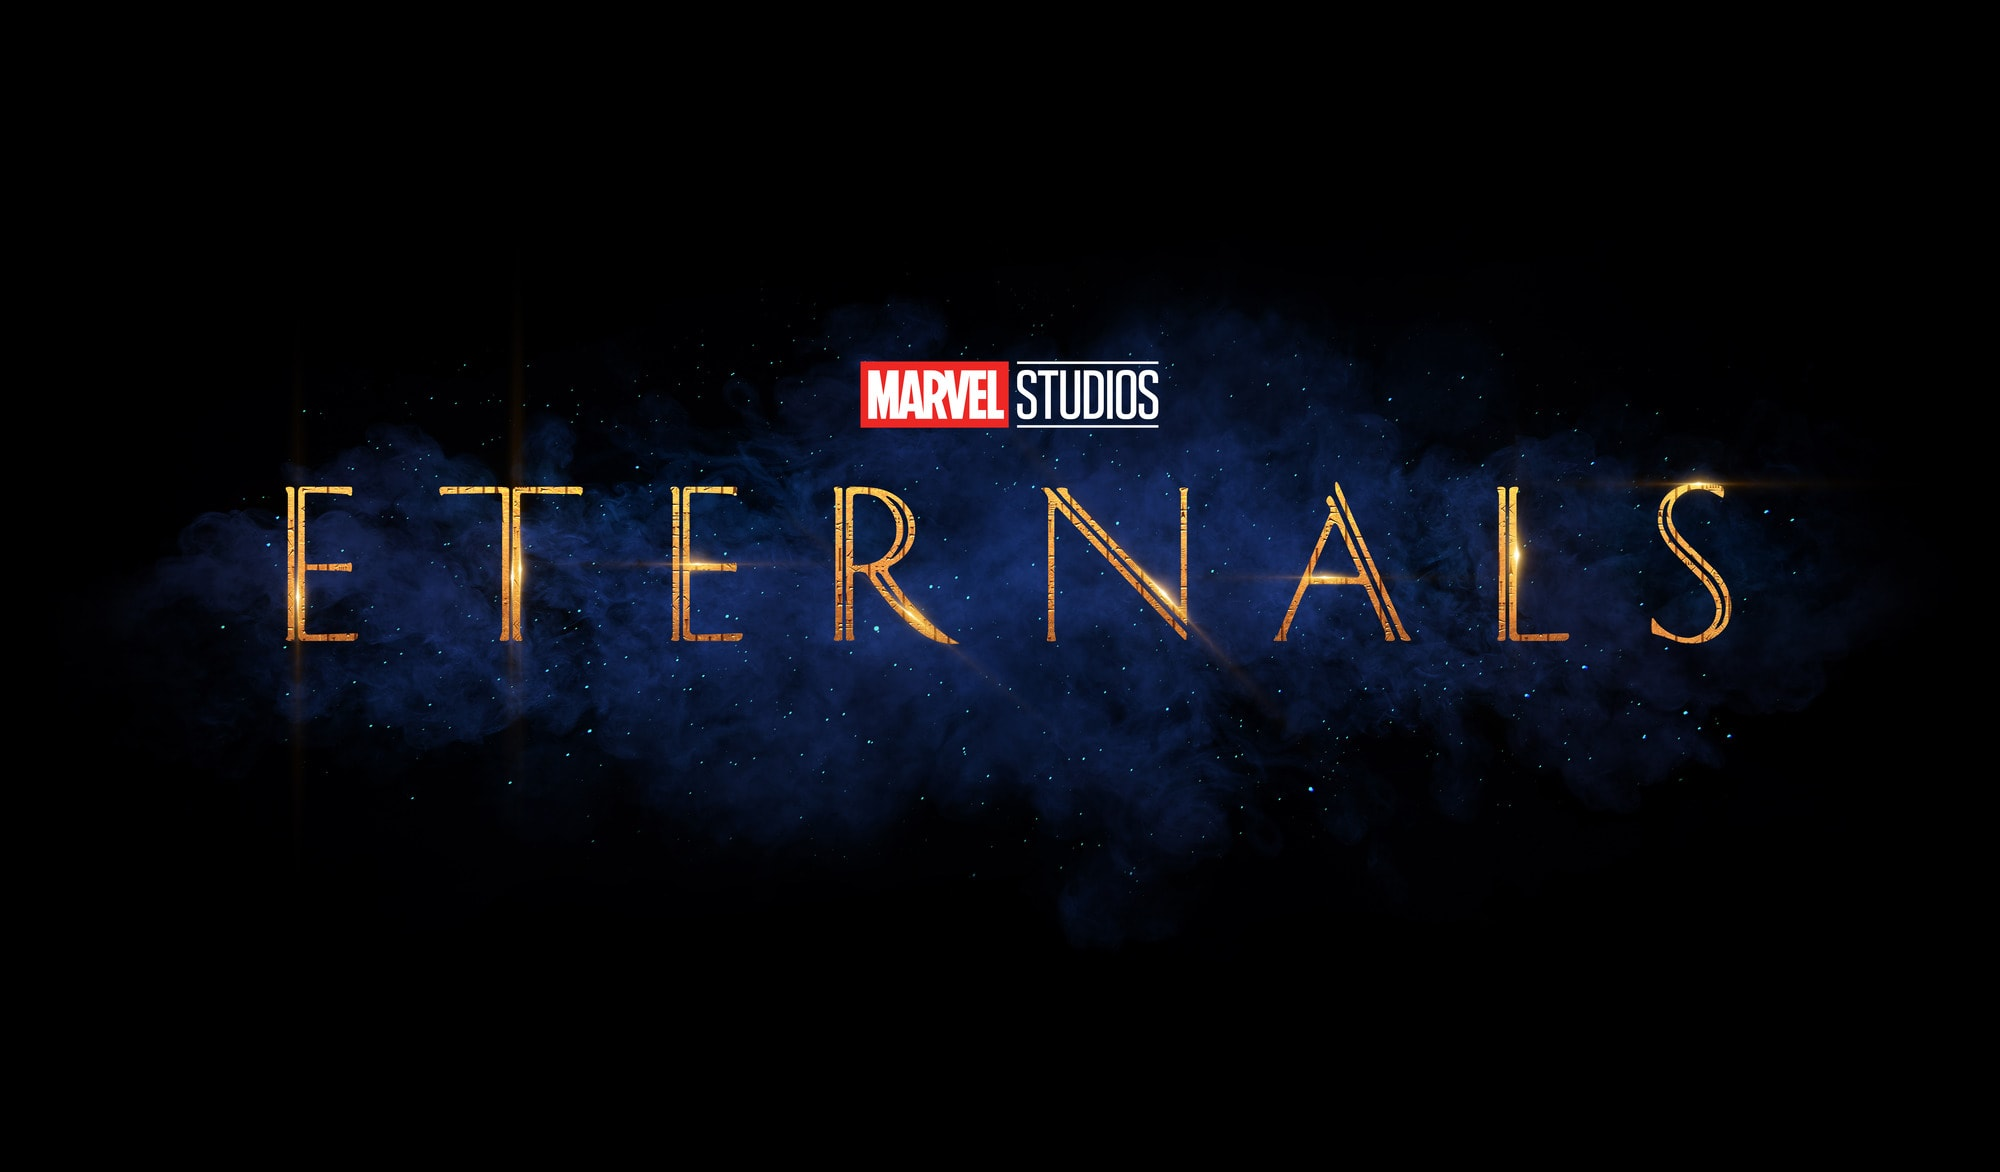 Kevin Feige takes a bold risk for Marvel's Eternals